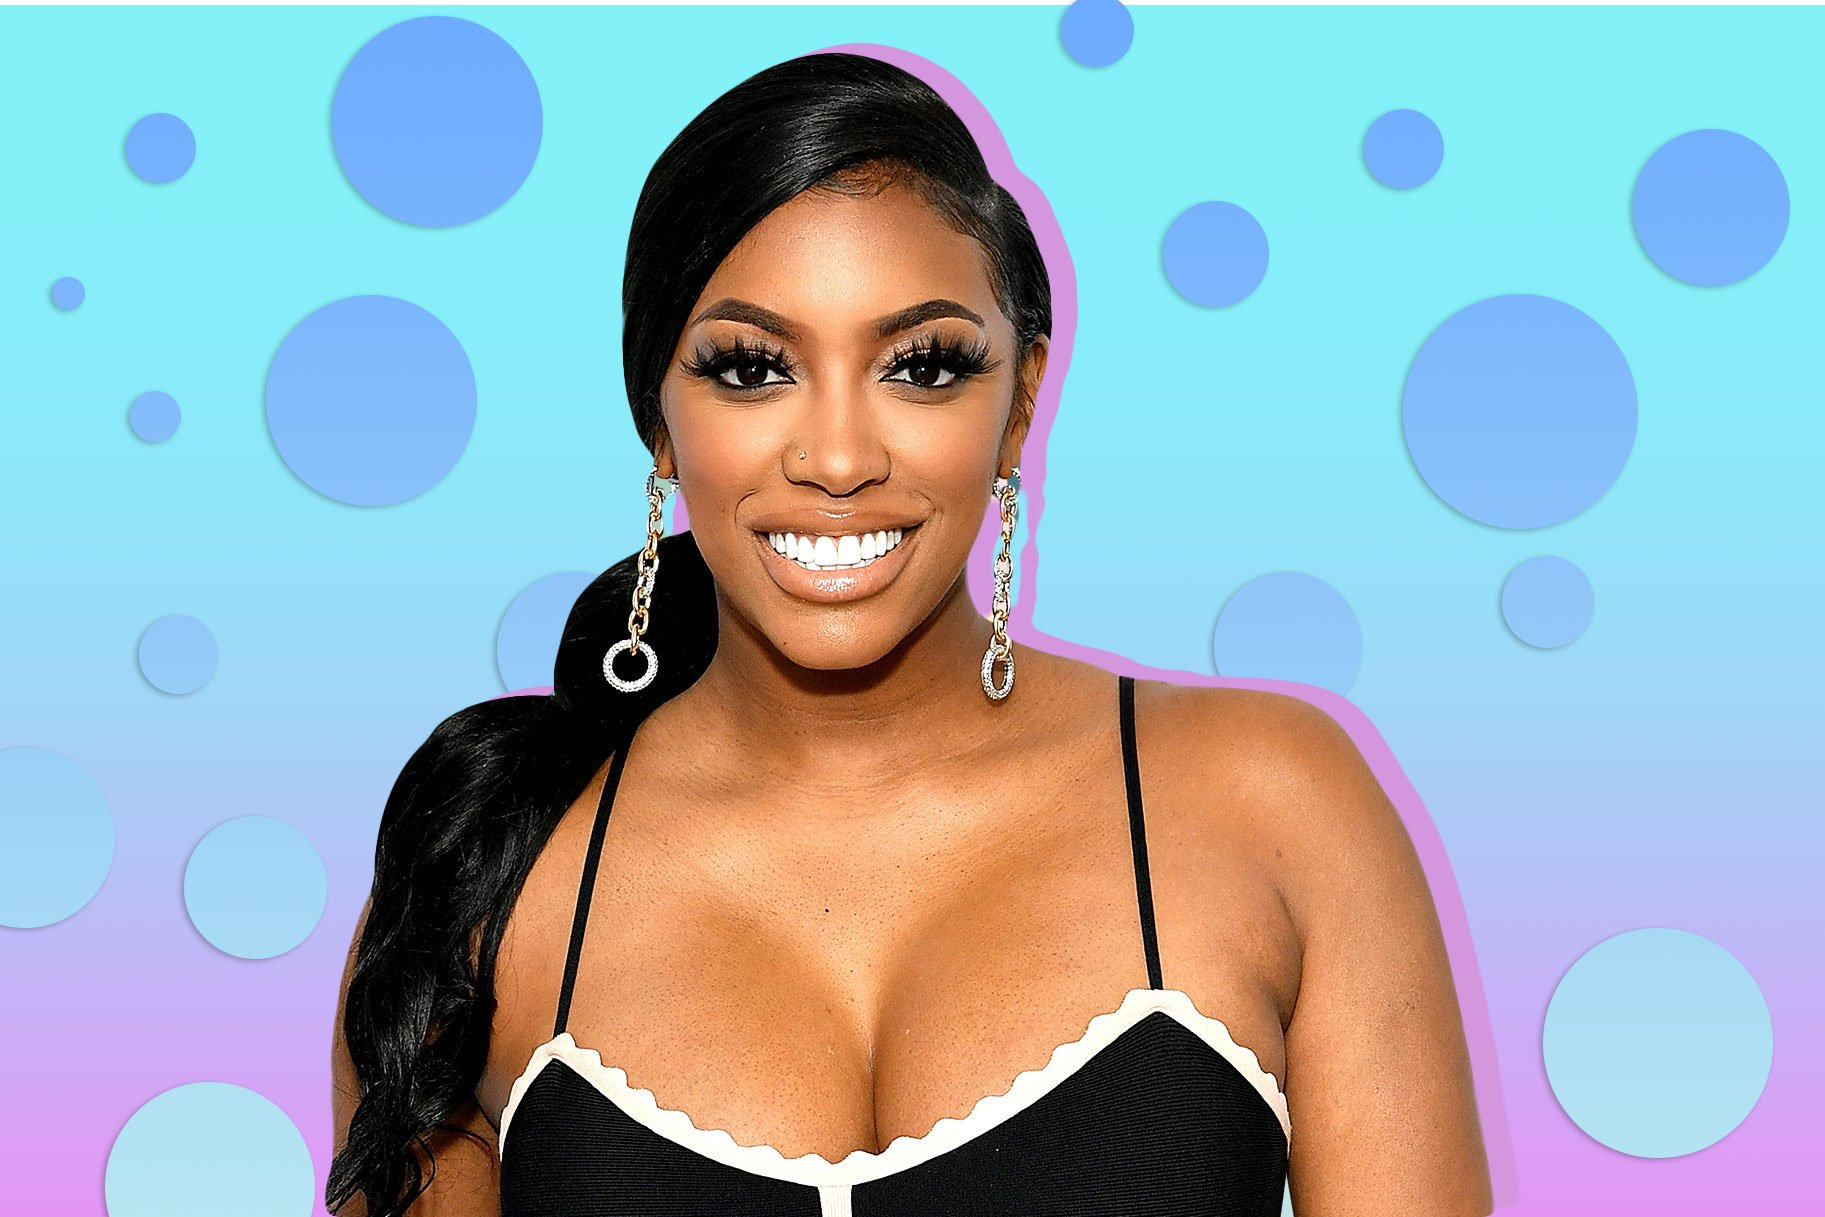 Porsha Williams' Daughter, Pilar Jhena Is Glowing In This Amazing Versace Outfit